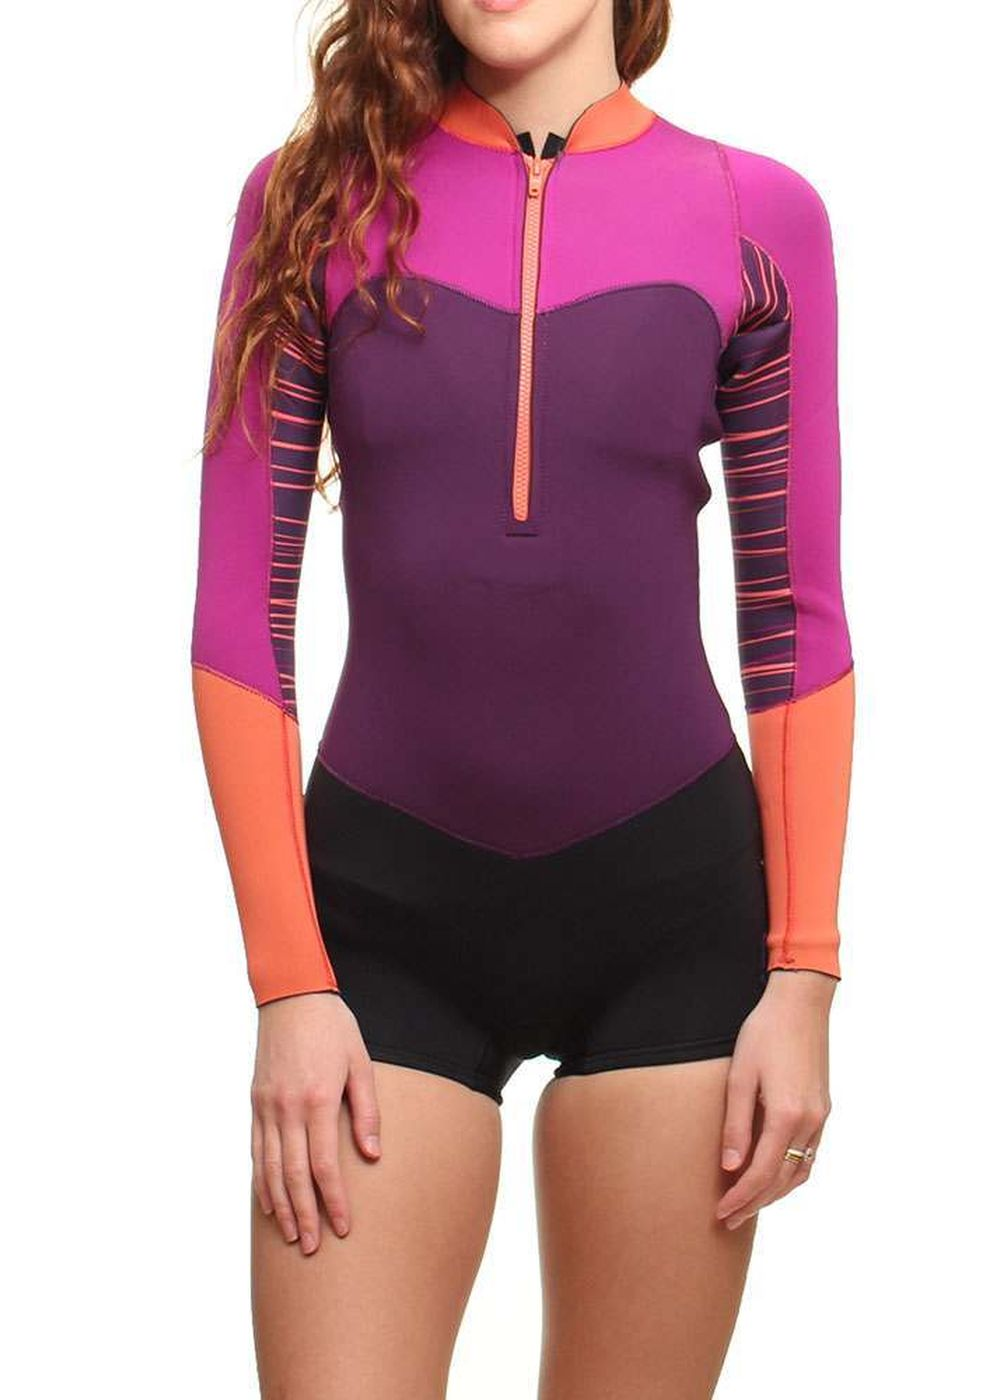 Roxy Xy 2mm Long Sleeve Shorty Wetsuit 2015 Mulbry Picture